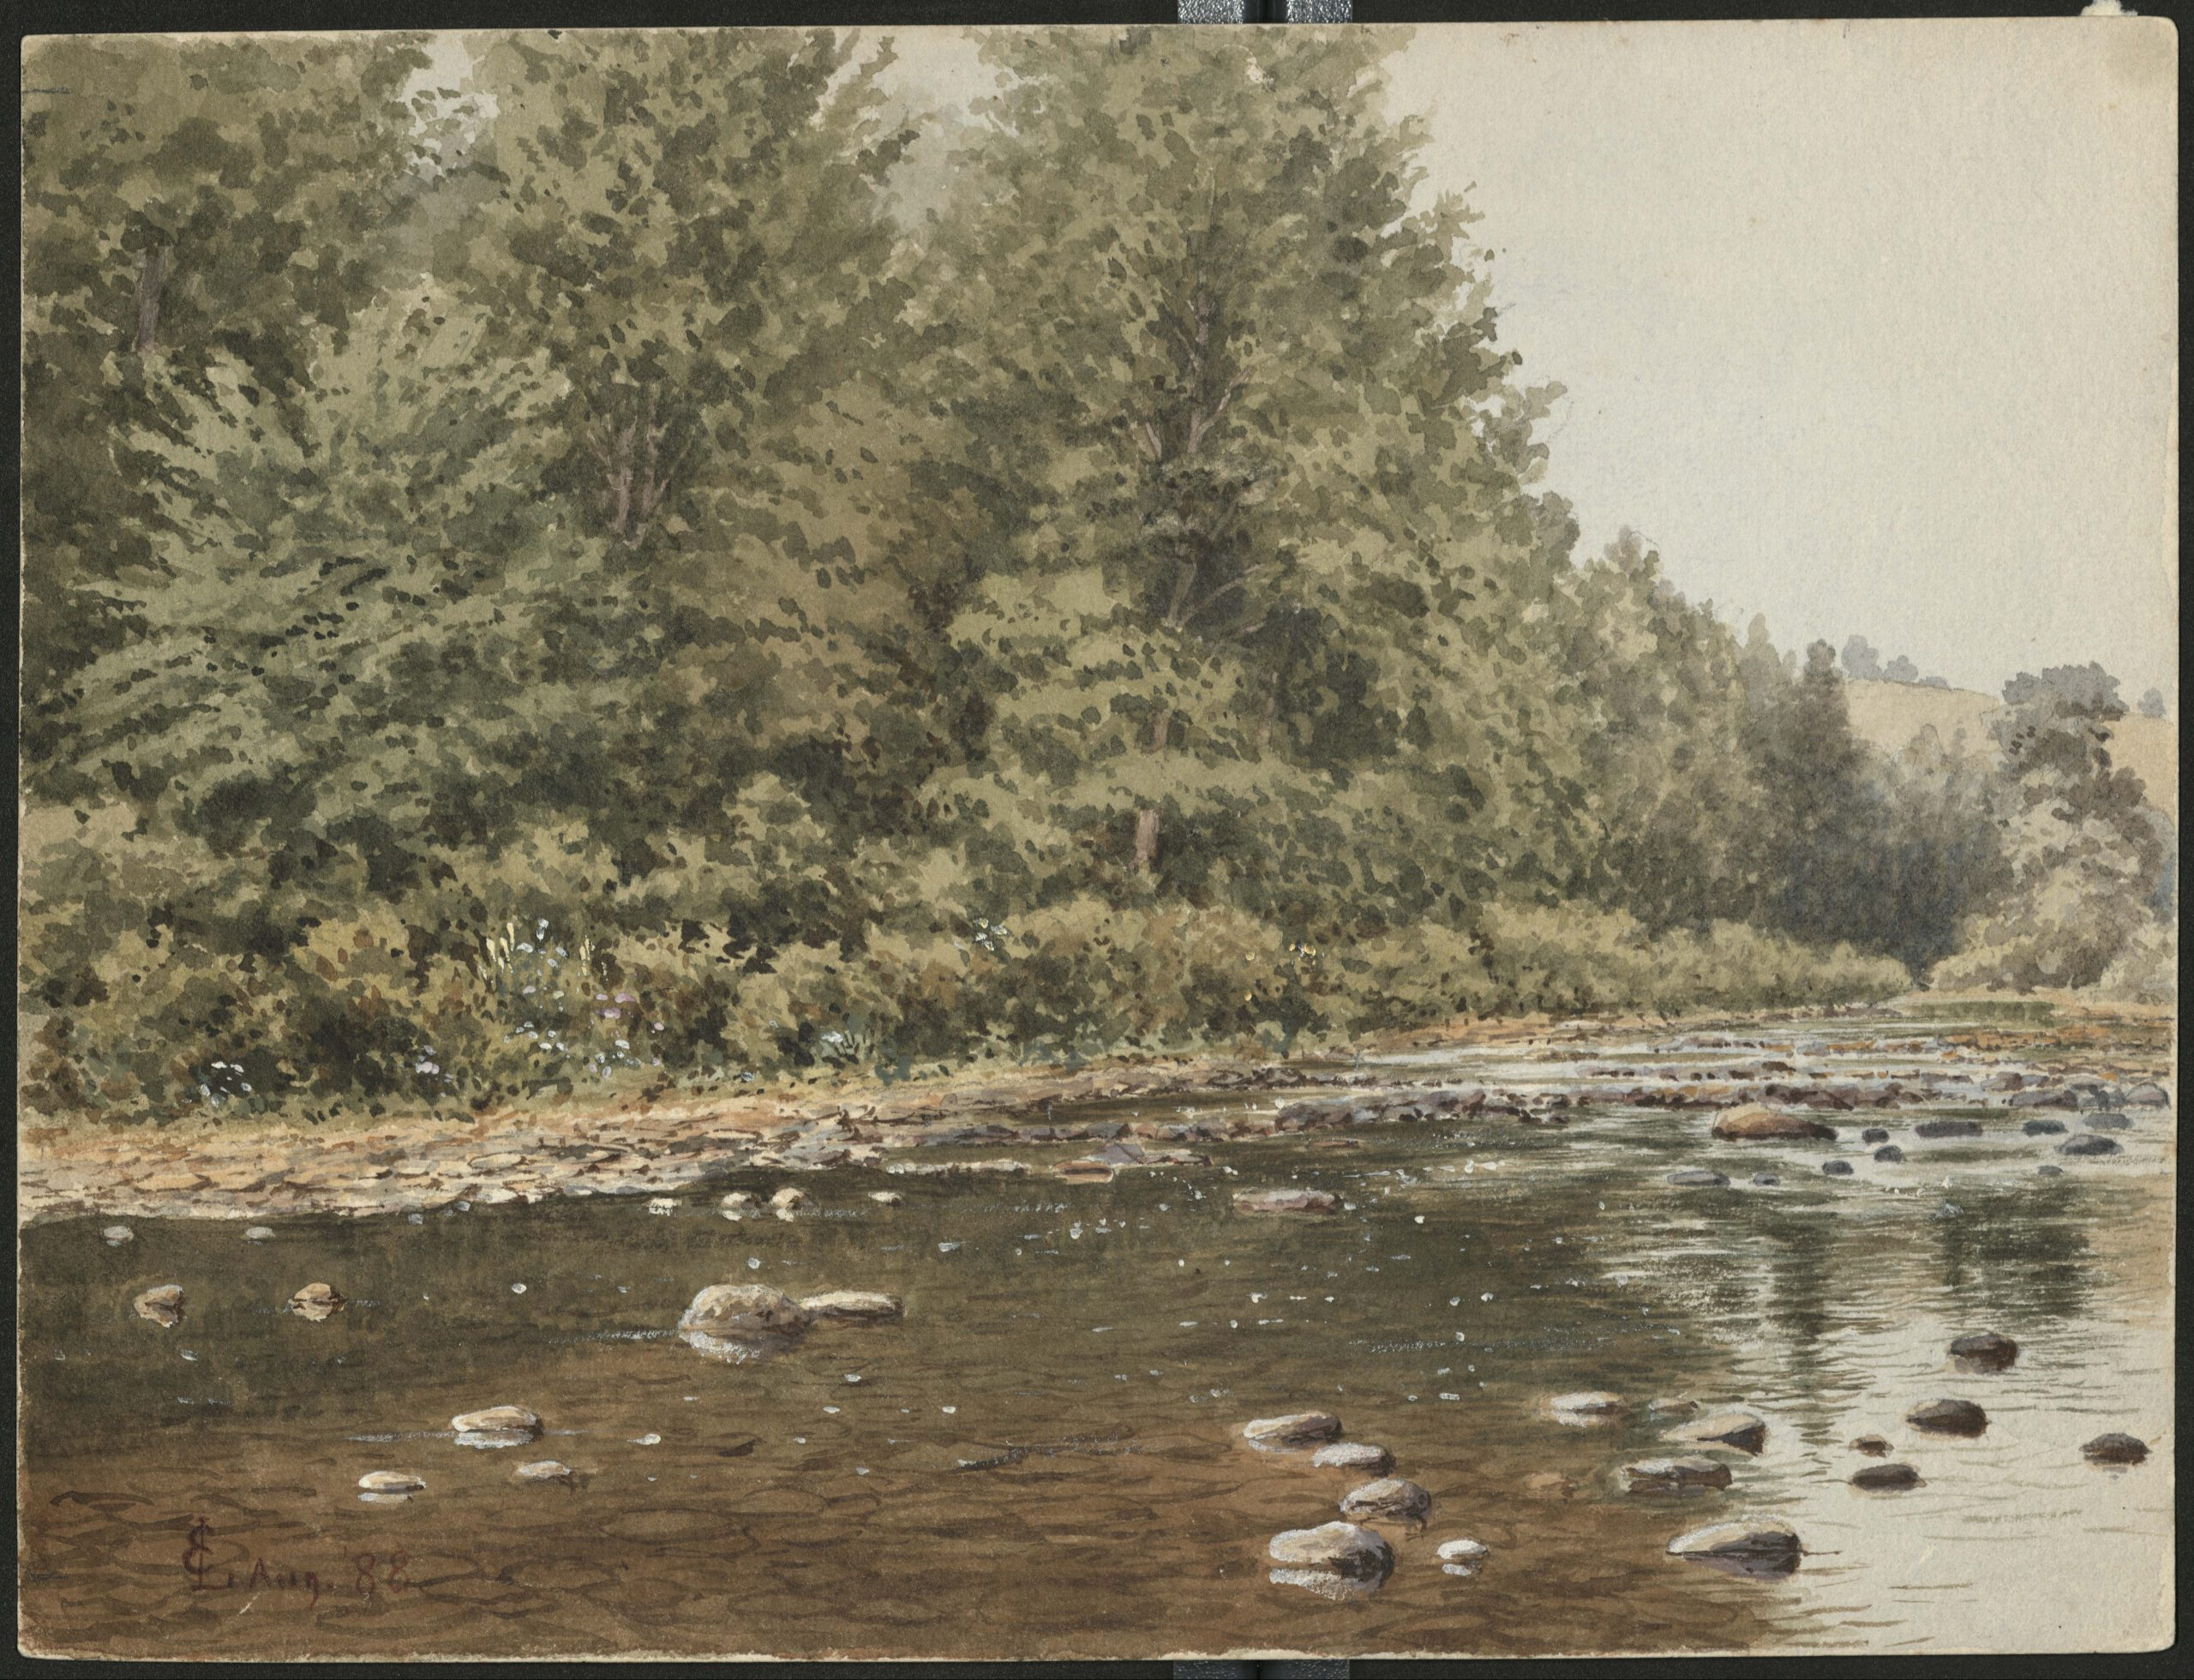 This image depicts a landscape watercolor painting of the Bushkill Creek near Bolton, or Jacobsburg, Pennsylvania. Pine trees are visible in the background.